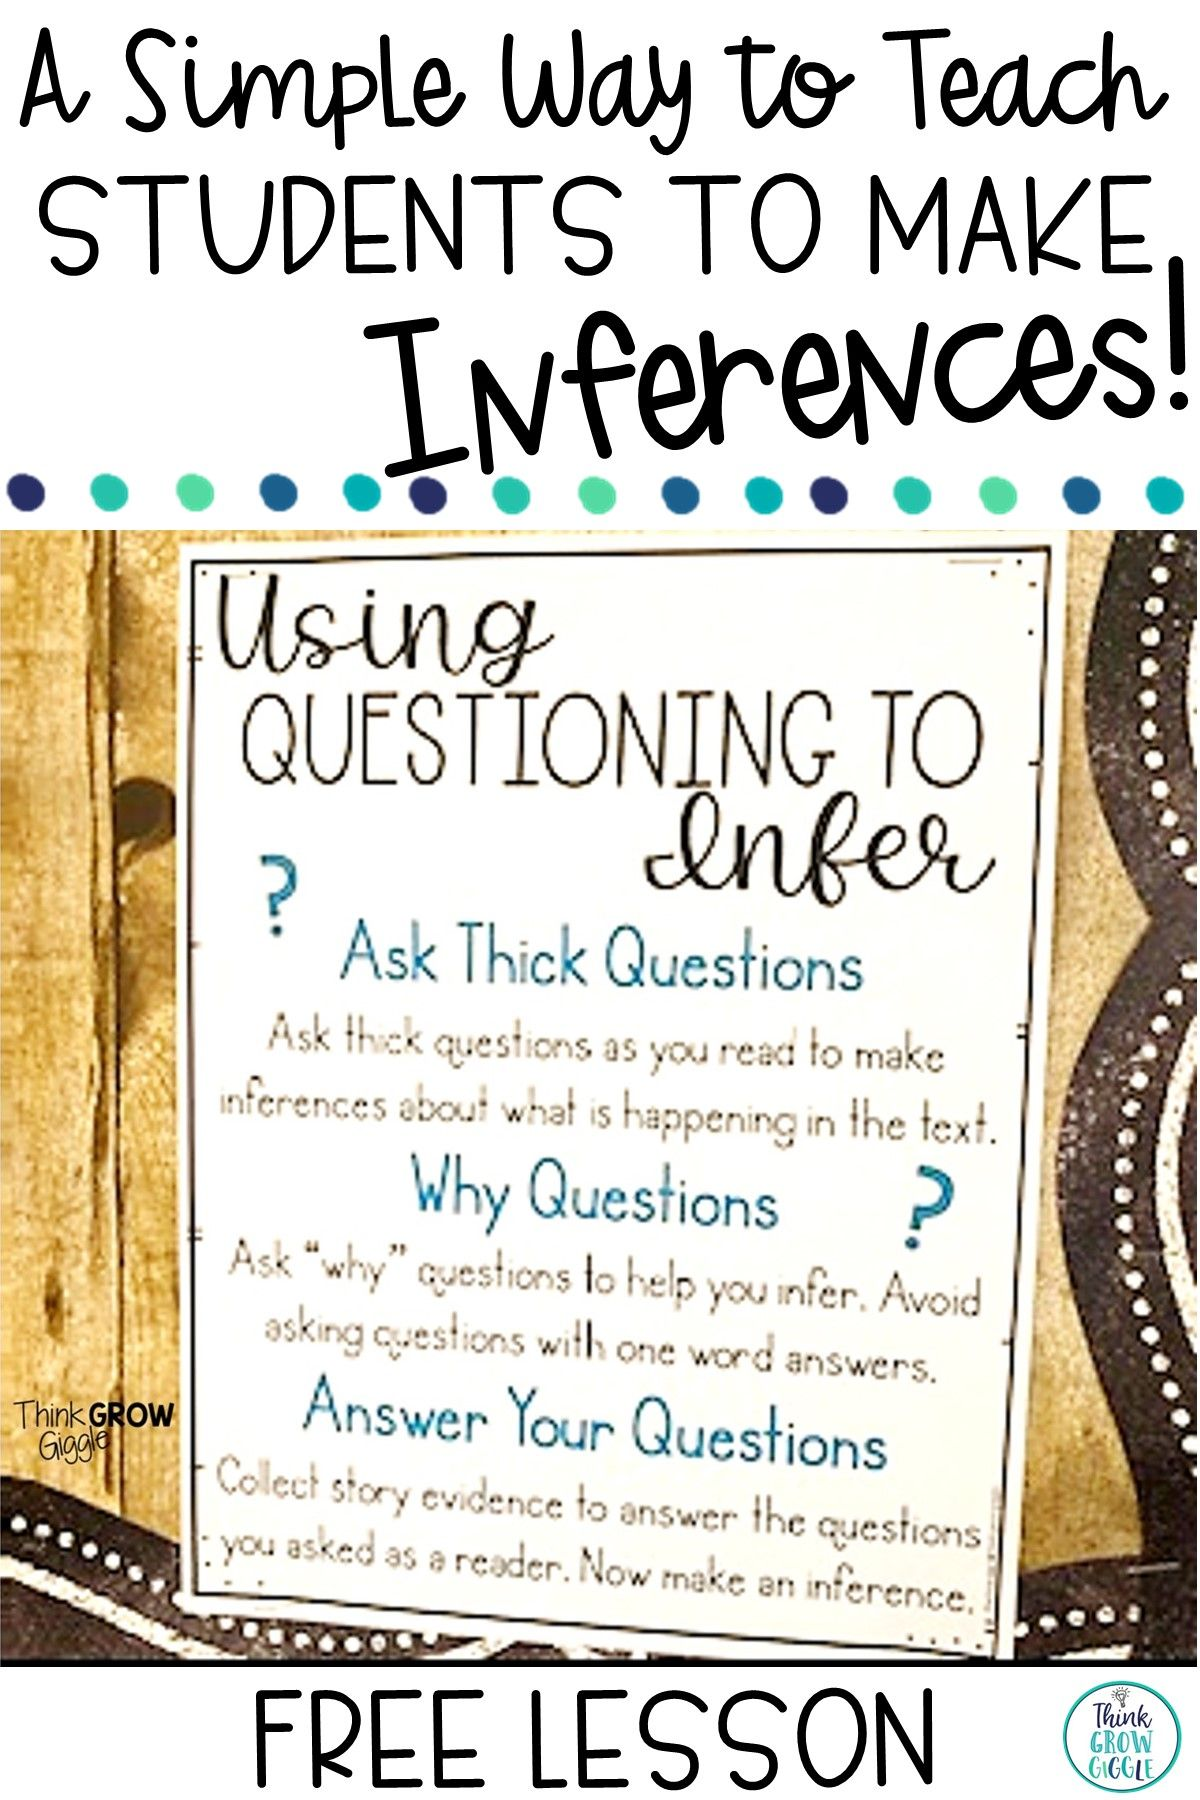 Making Inferences Activities Anchor Chart Lesson Idea Making Inferences Activities Inference Activities Inferring Lessons [ 1800 x 1200 Pixel ]